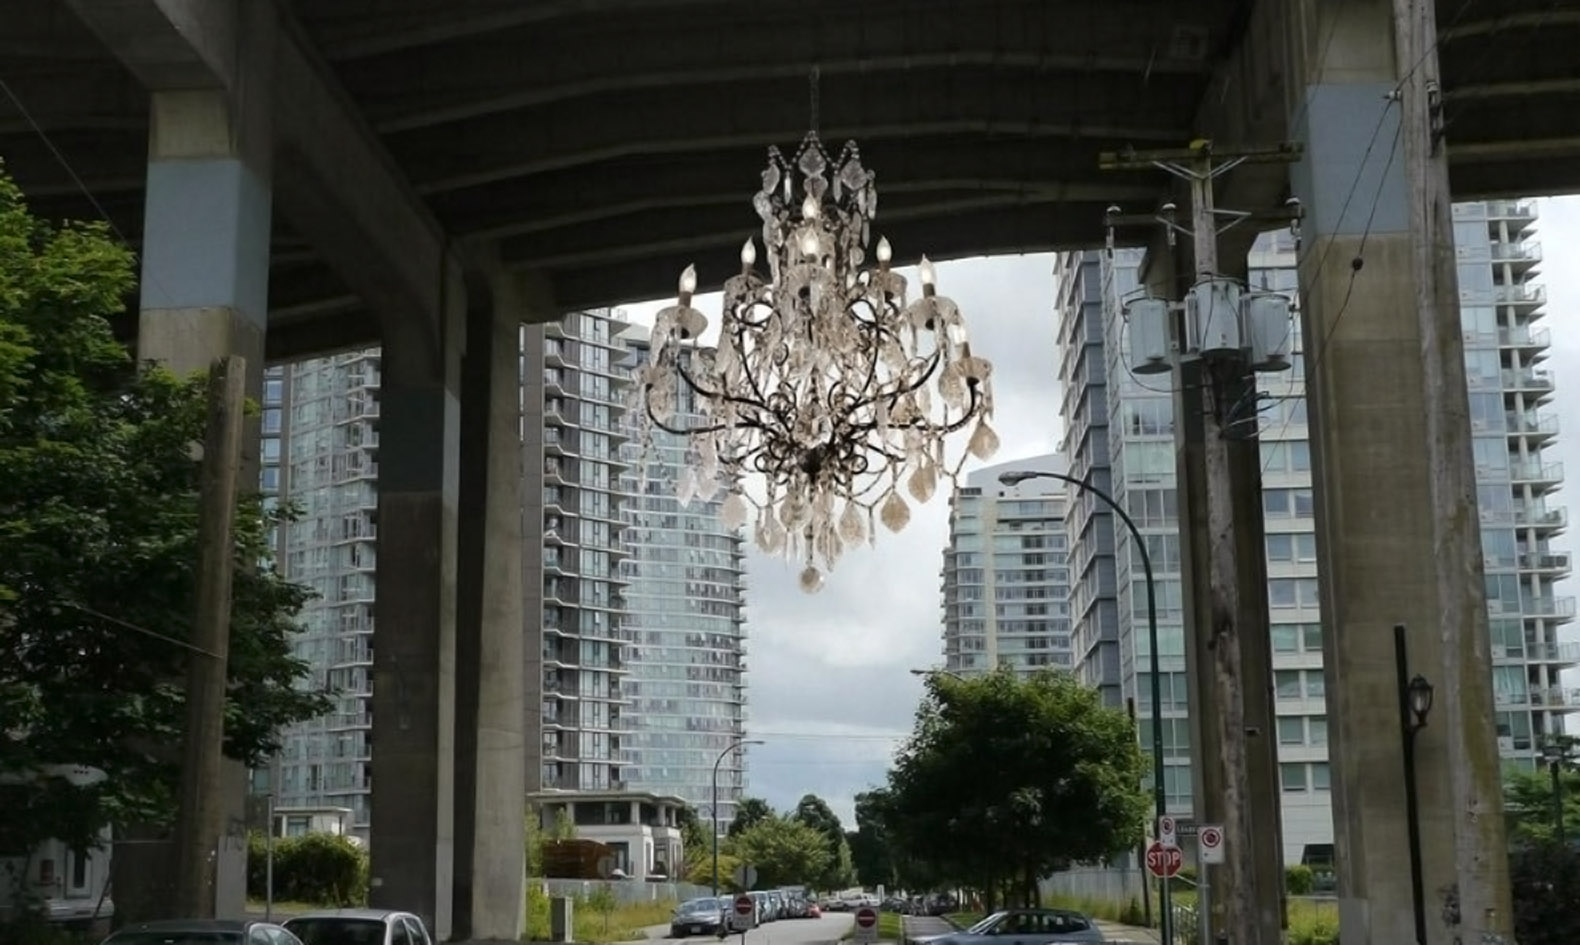 Vancouver Lights Up A Dark Highway Overpass With A Massive Throughout Massive Chandelier (#11 of 12)